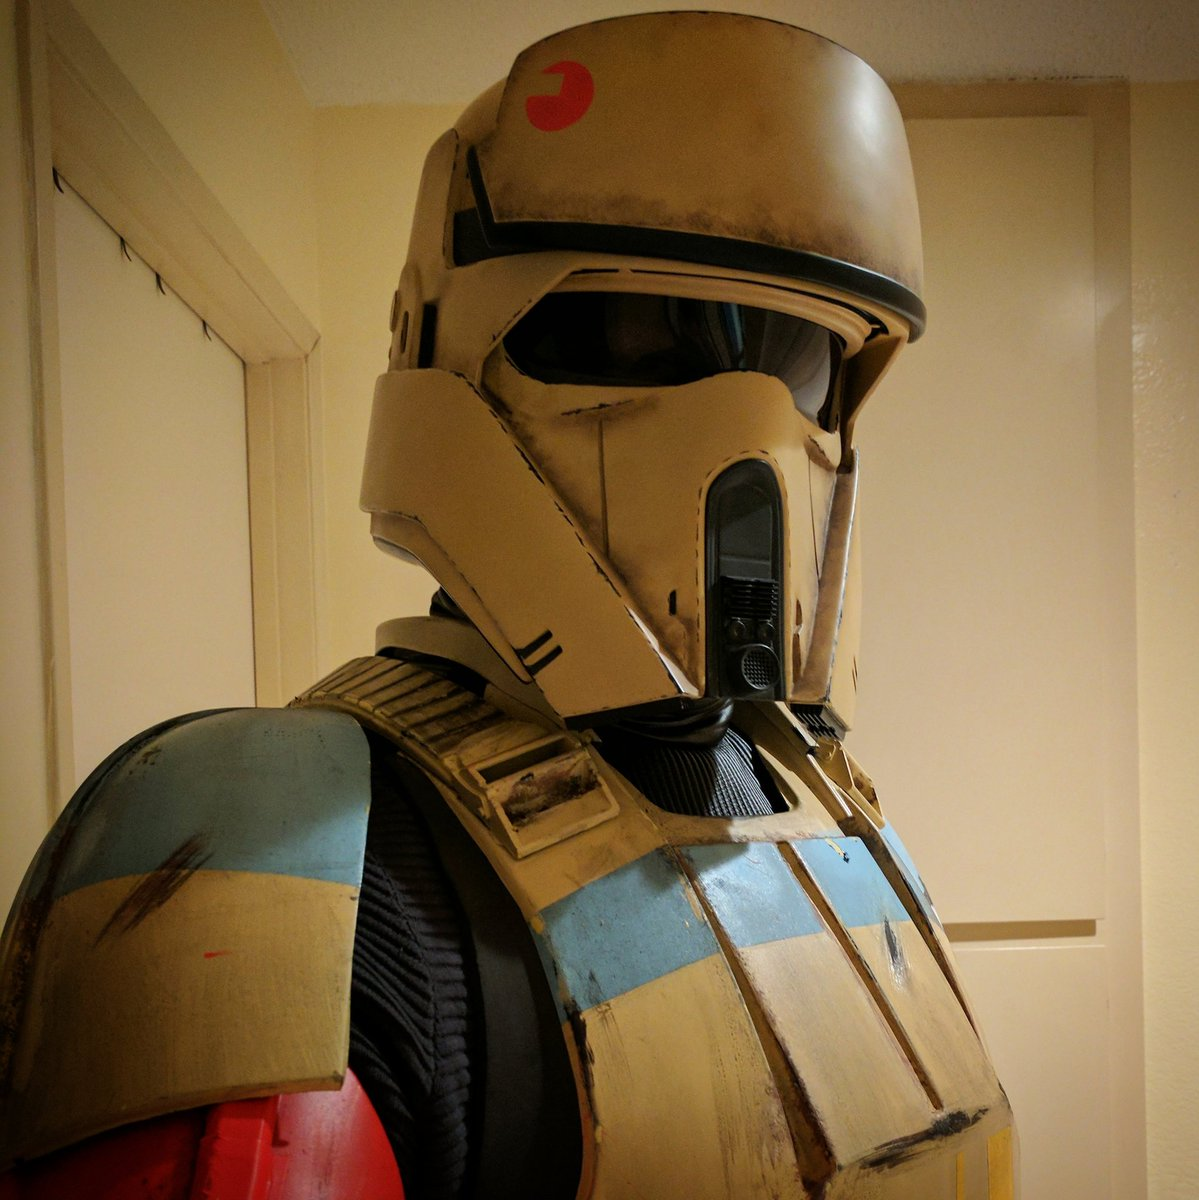 Test fitted my Shoretrooper kit with my Anovos helmet. #shoretrooper #scarifstormtrooper #rogueone #anovos #squadleader<br>http://pic.twitter.com/baMUakjs5E